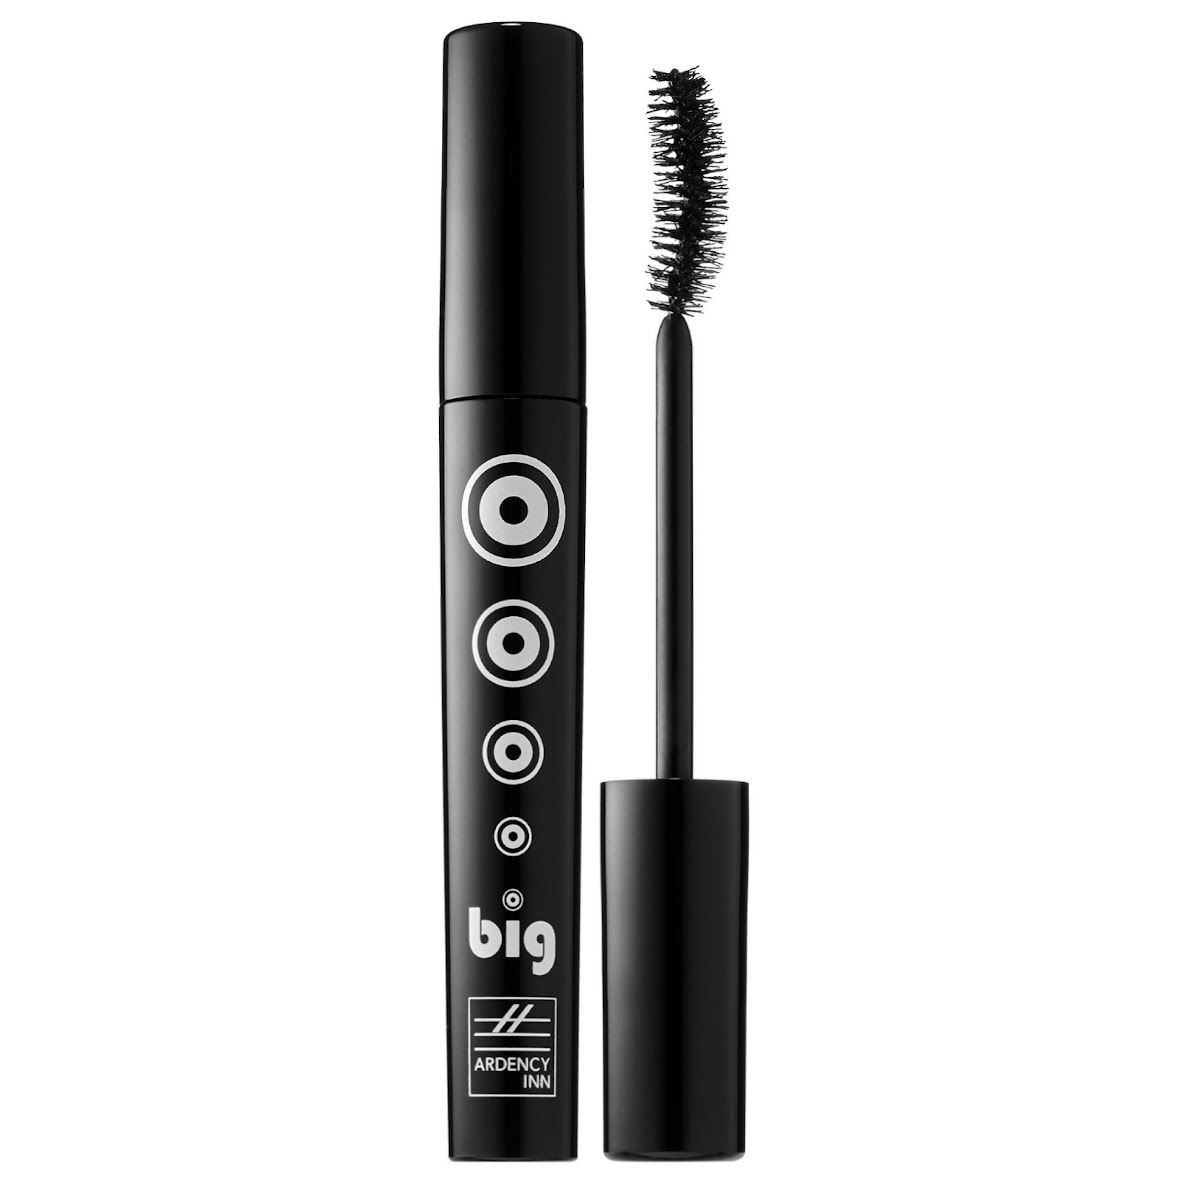 ARDENCY INN MODSTER BIG mascara